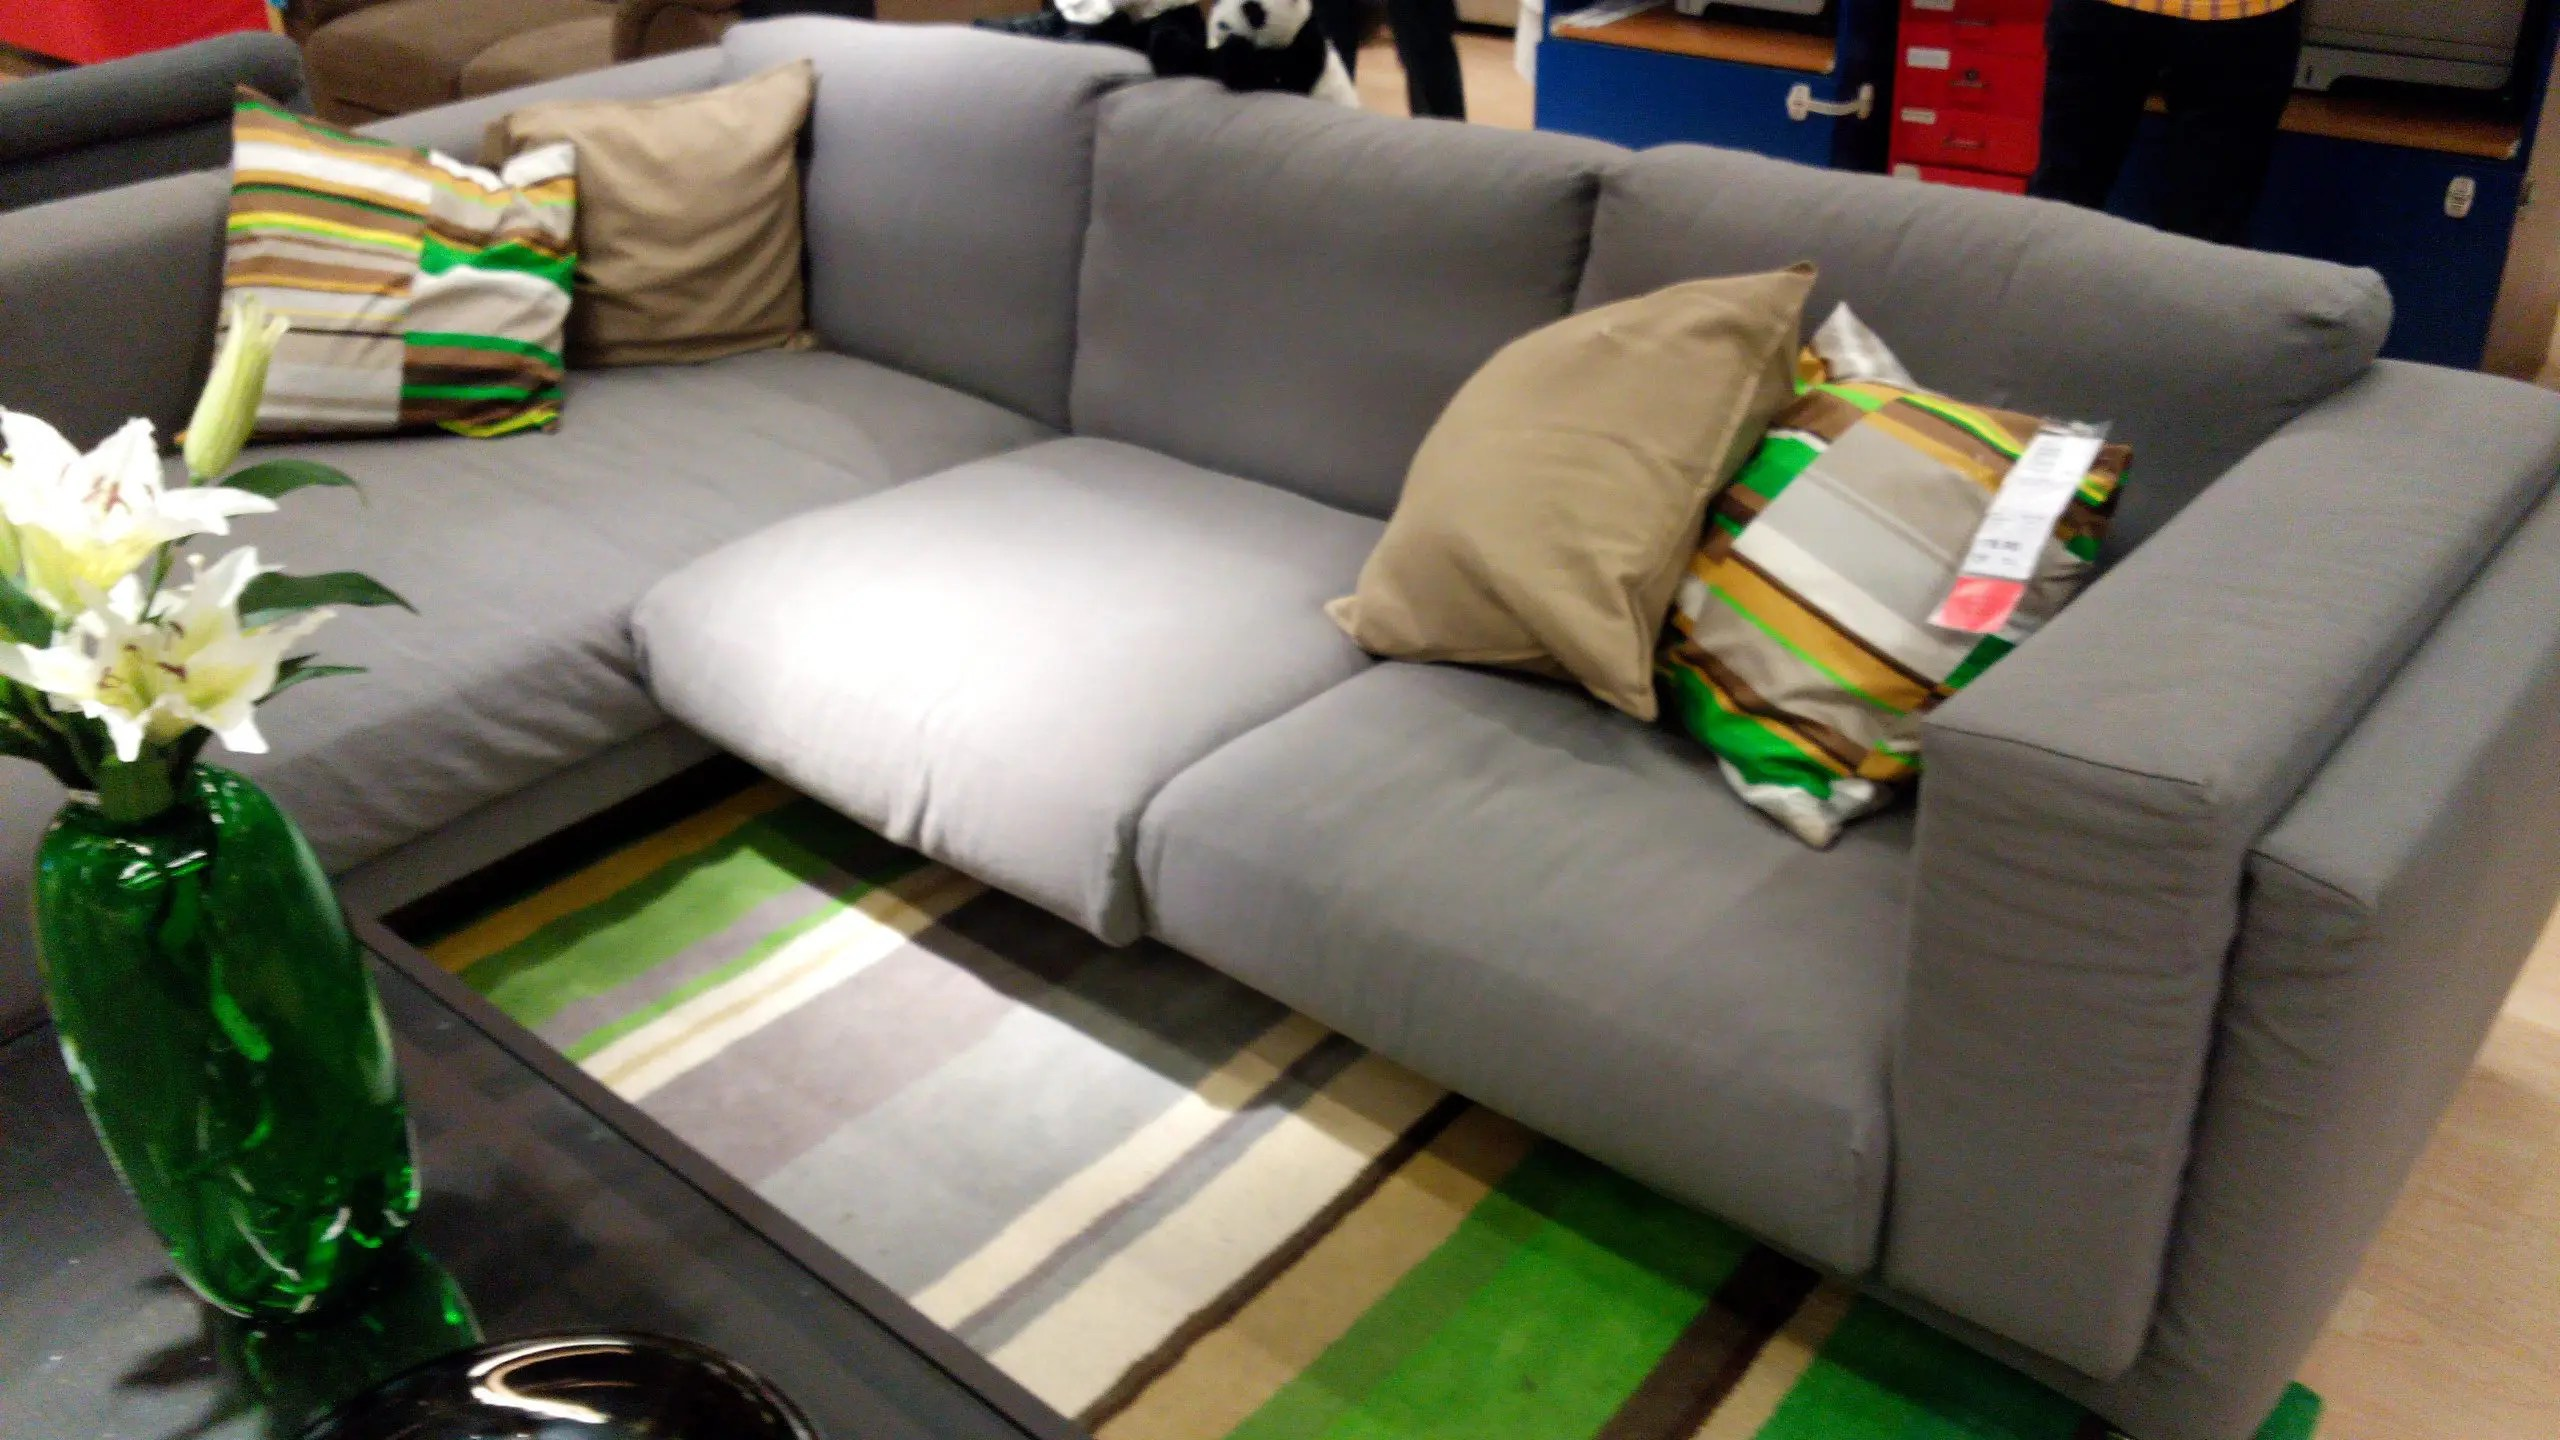 Ikea Sofa Vallentuna Erfahrung Ikea Nockeby Sofa Review New Ikea Couch Series Mid 2014